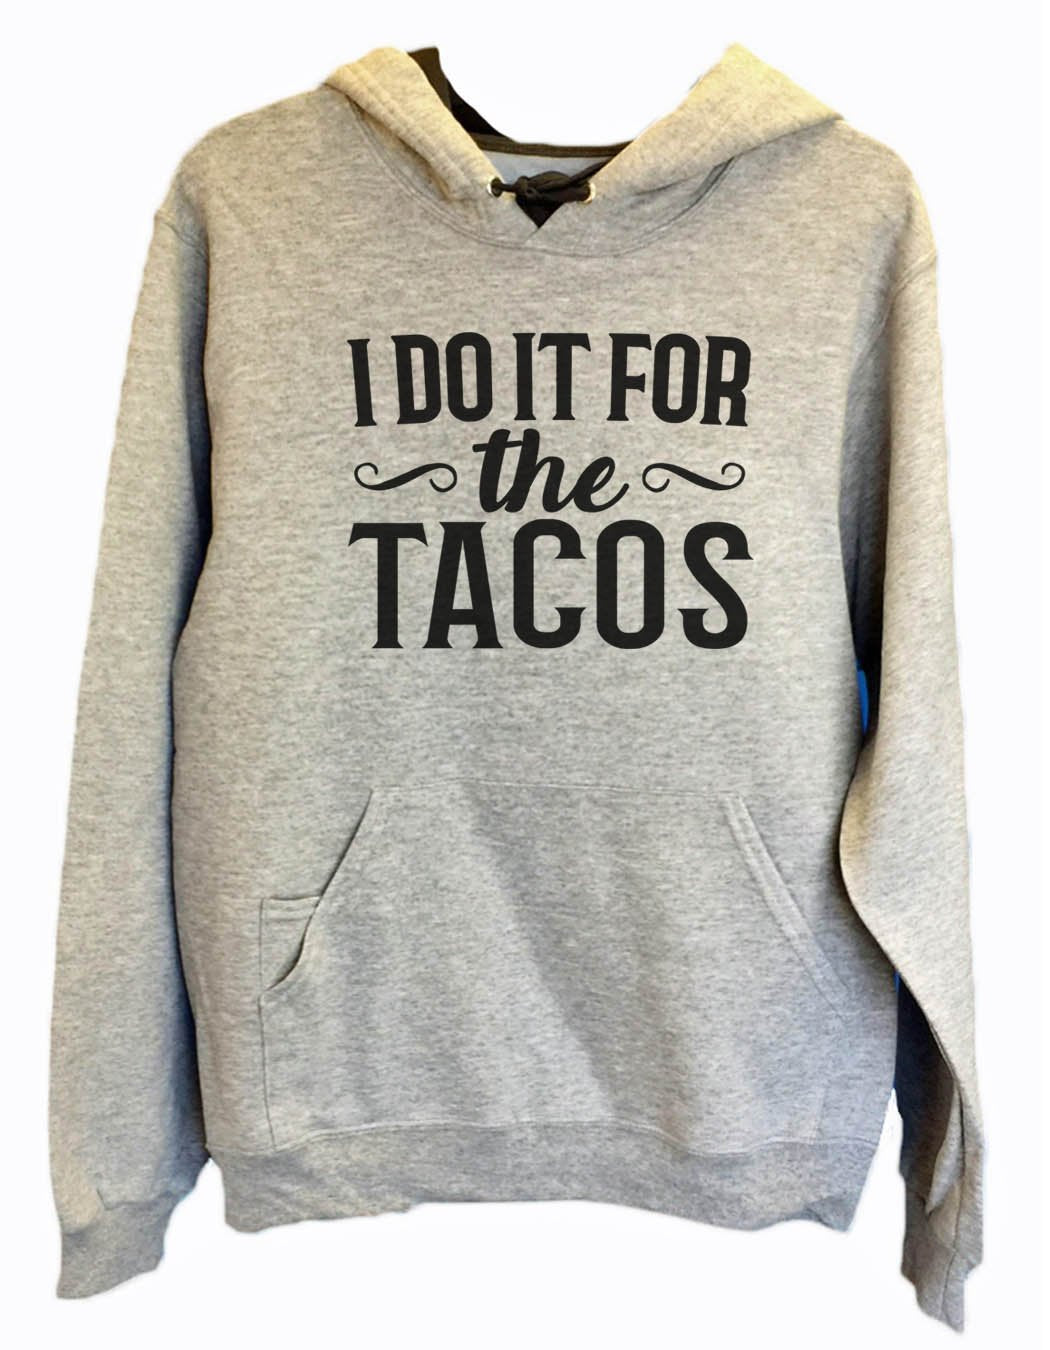 UNISEX HOODIE - I Do It For The Tacos - FUNNY MENS AND WOMENS HOODED SWEATSHIRTS - 2121 Funny Shirt Small / Heather Grey